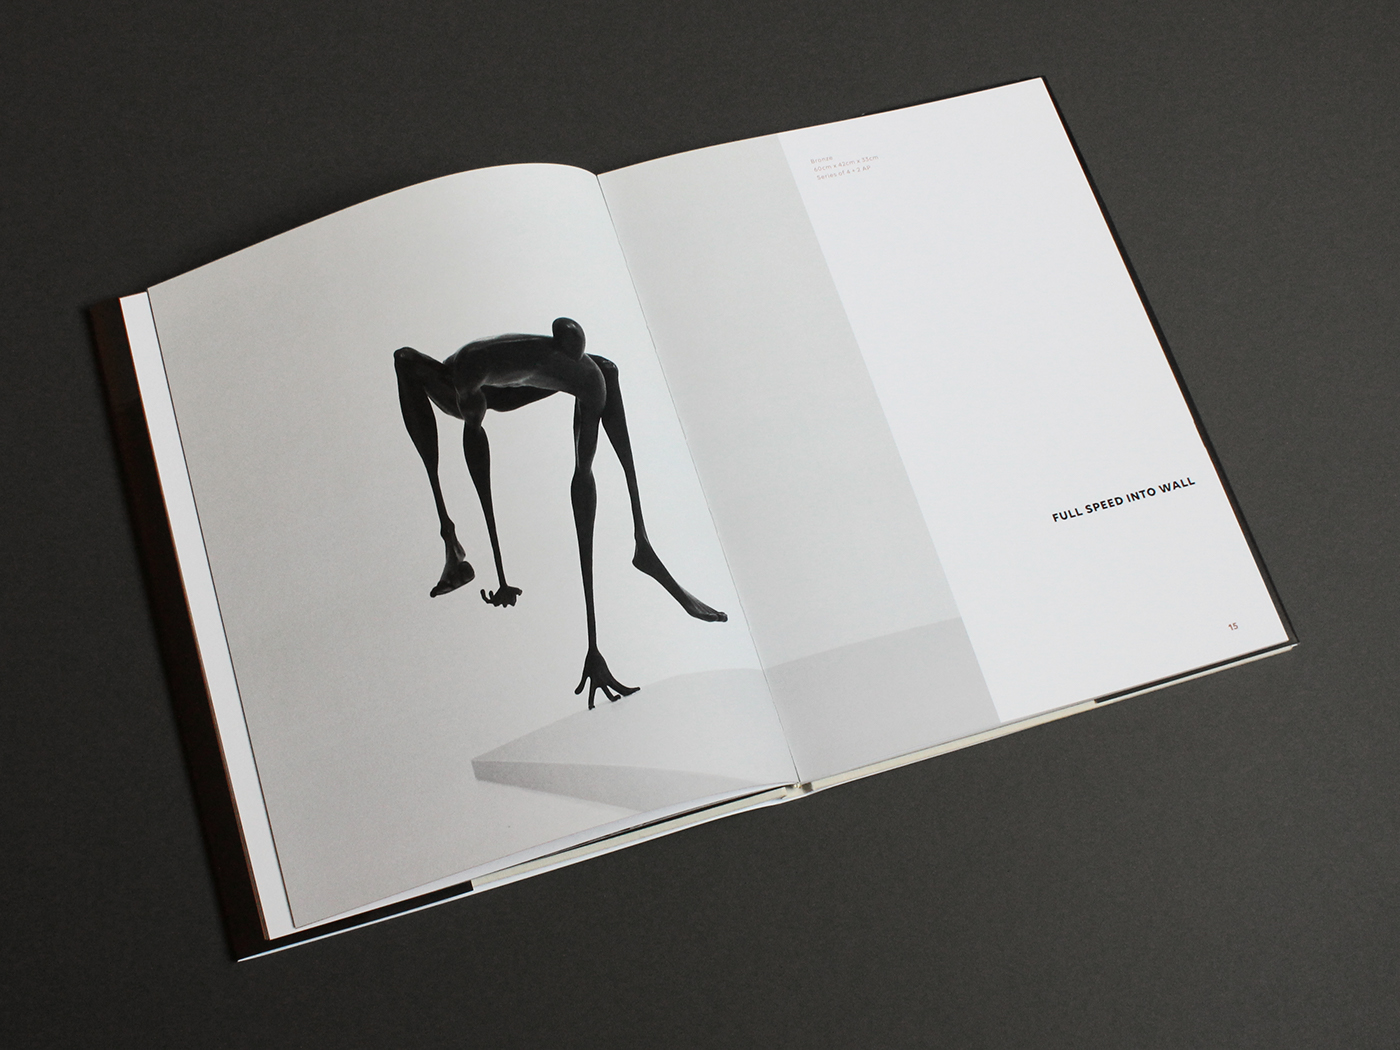 artist sculptor sculpture Layout book design editorial cover typography   type